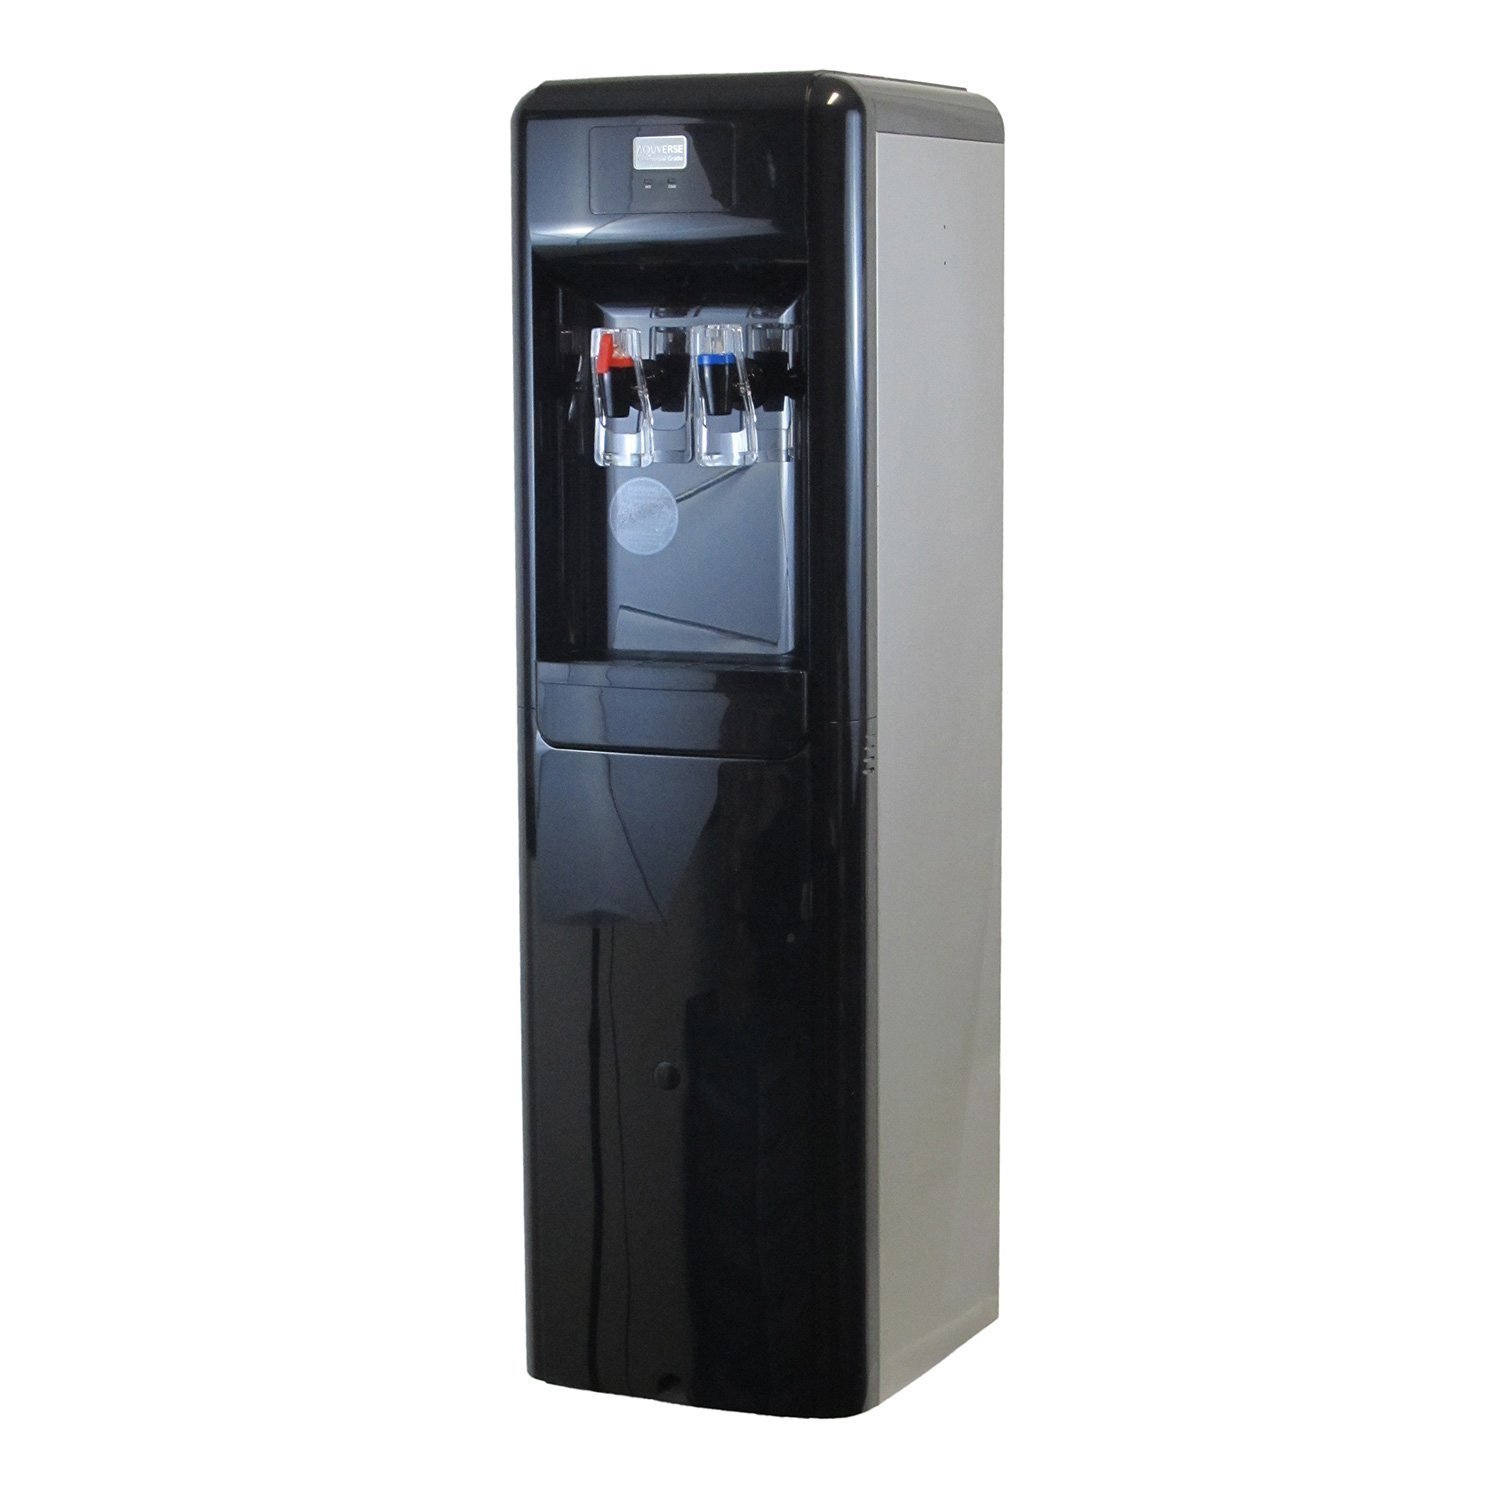 Aquverse 5PH-Bottleless Commercial Grade Hot & Cold Water Dispenser by Aquverse (Image #1)